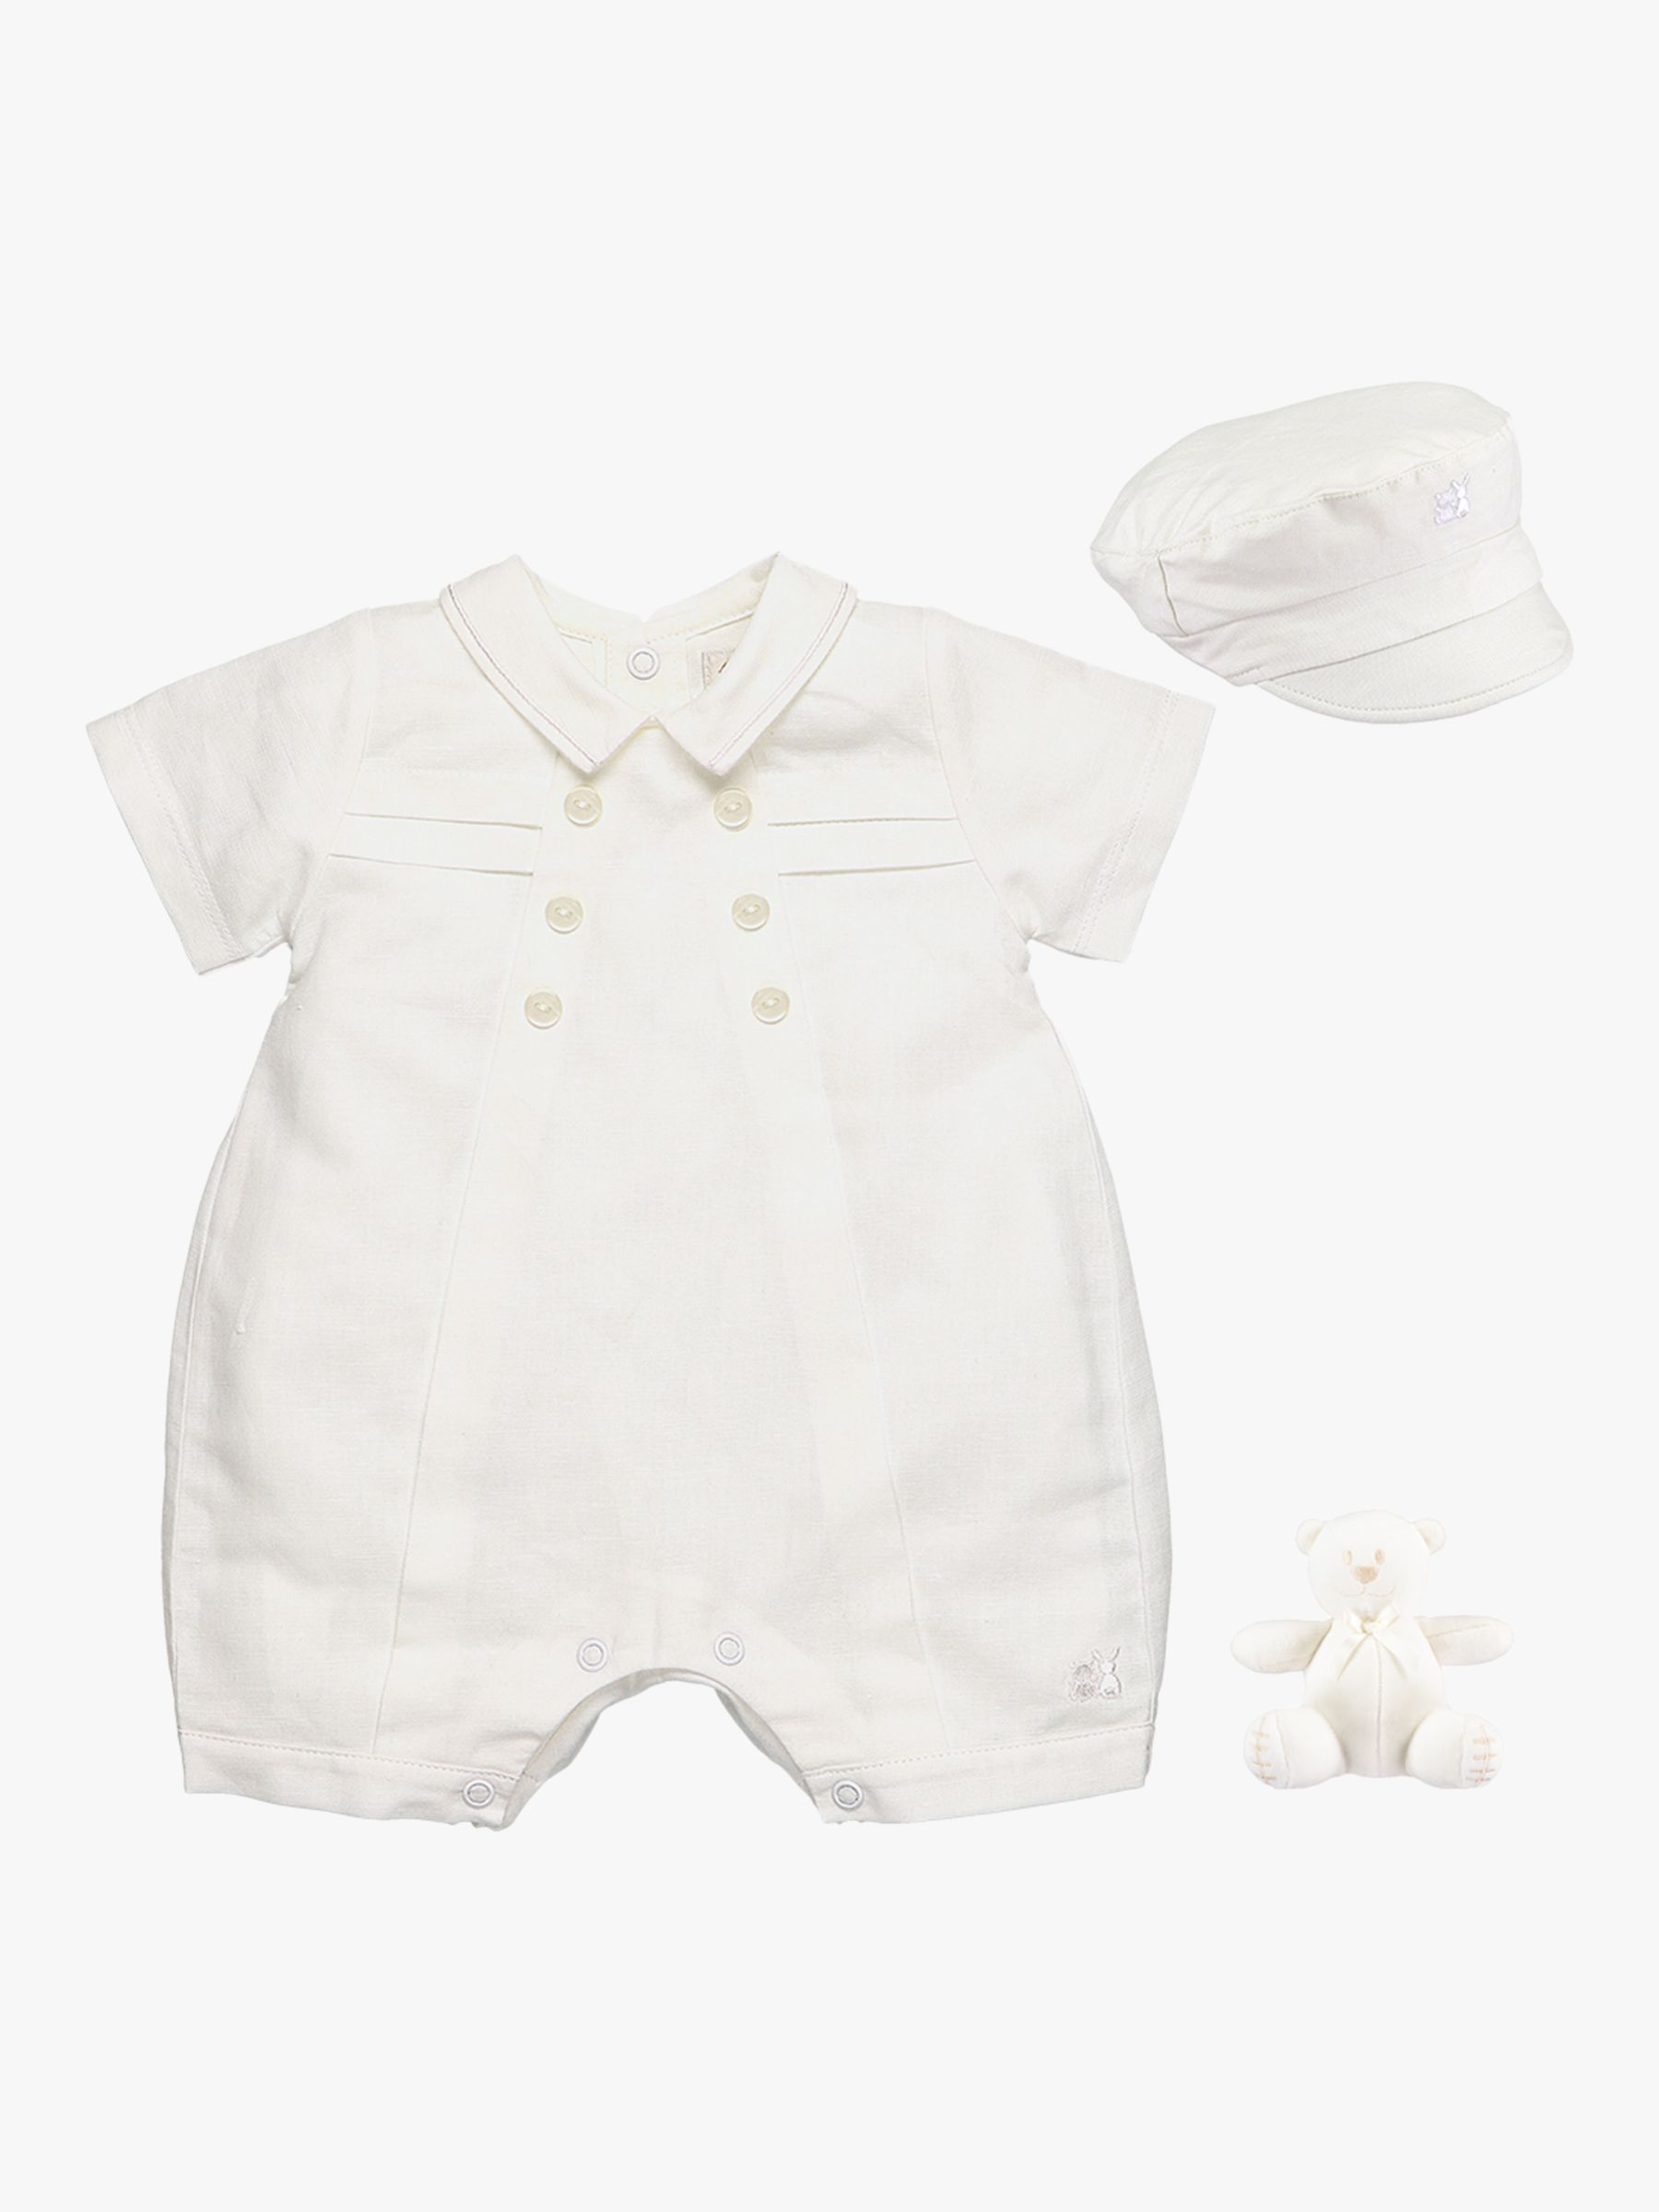 Emile et Rose Emile et Rose Pierre Romper, Hat and Teddy Bear Set, White